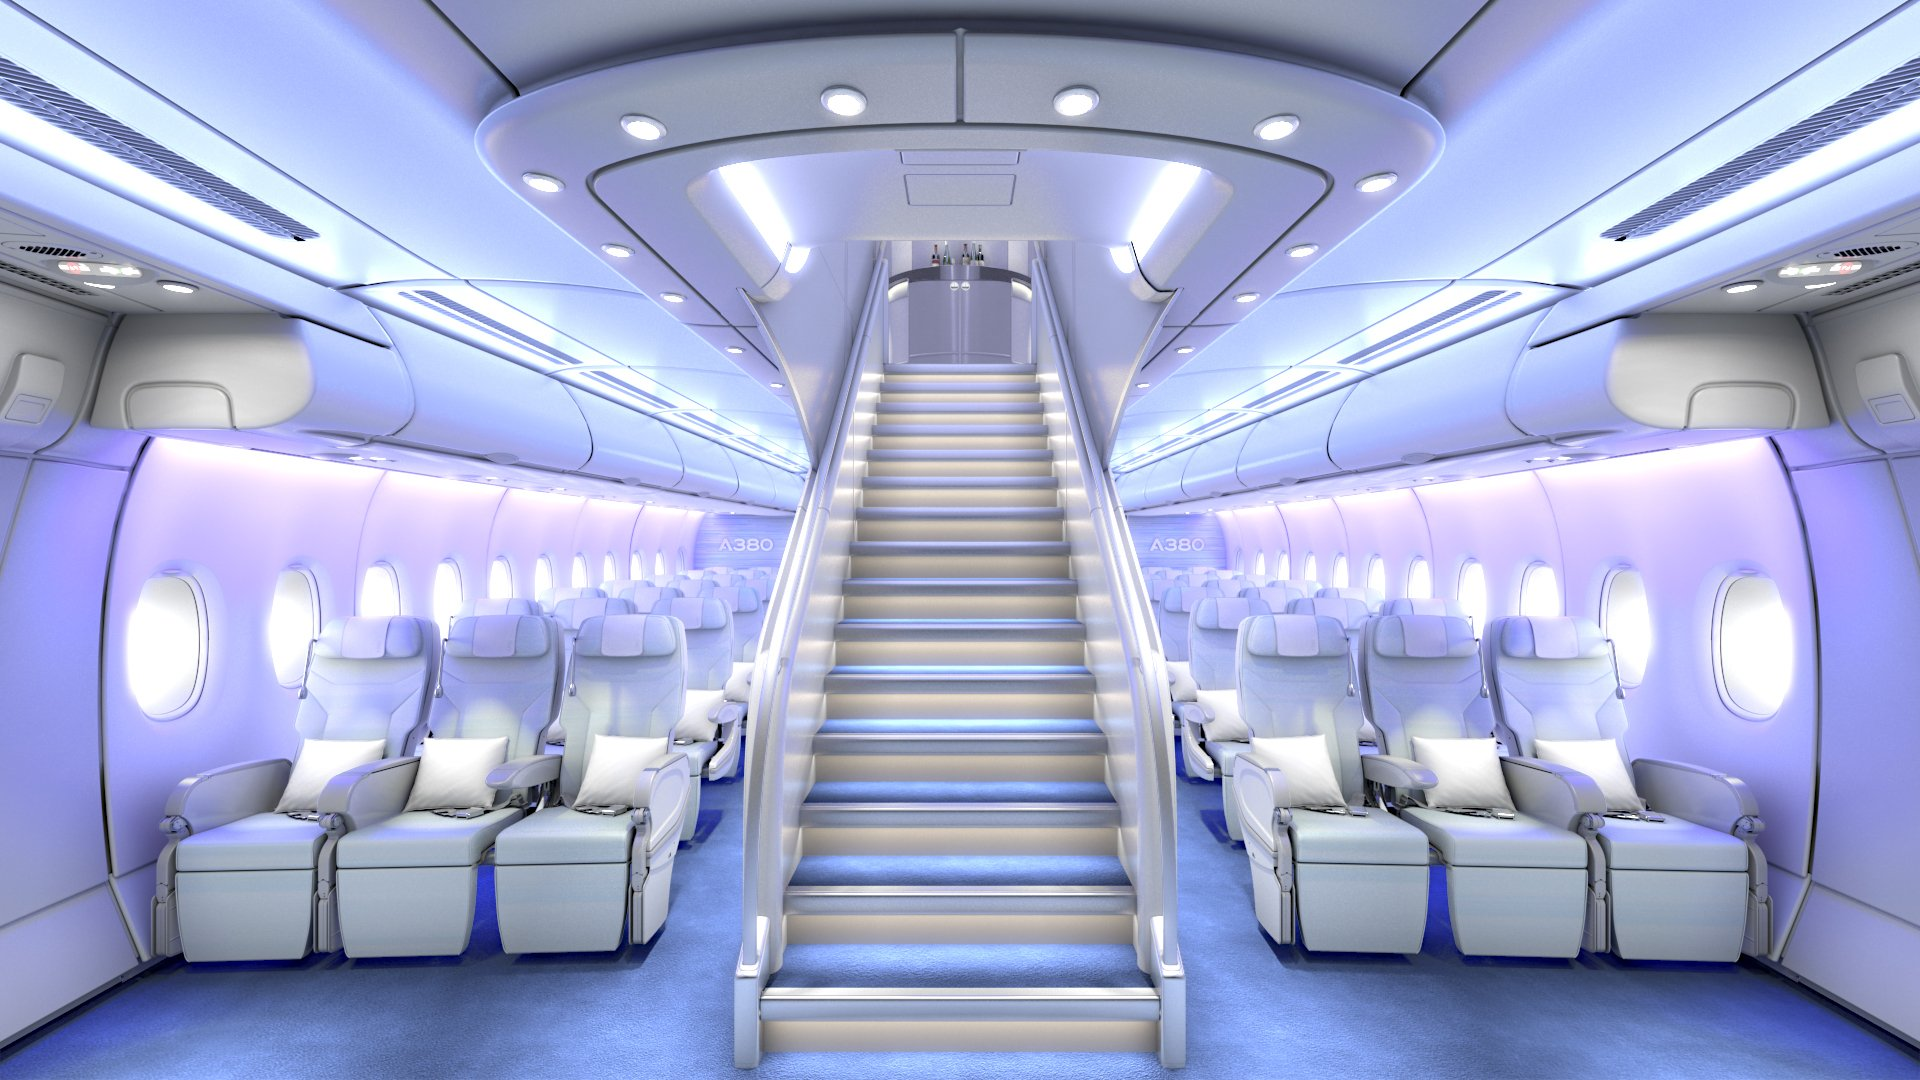 Most exepnsive Private Jet in the world - The Seats